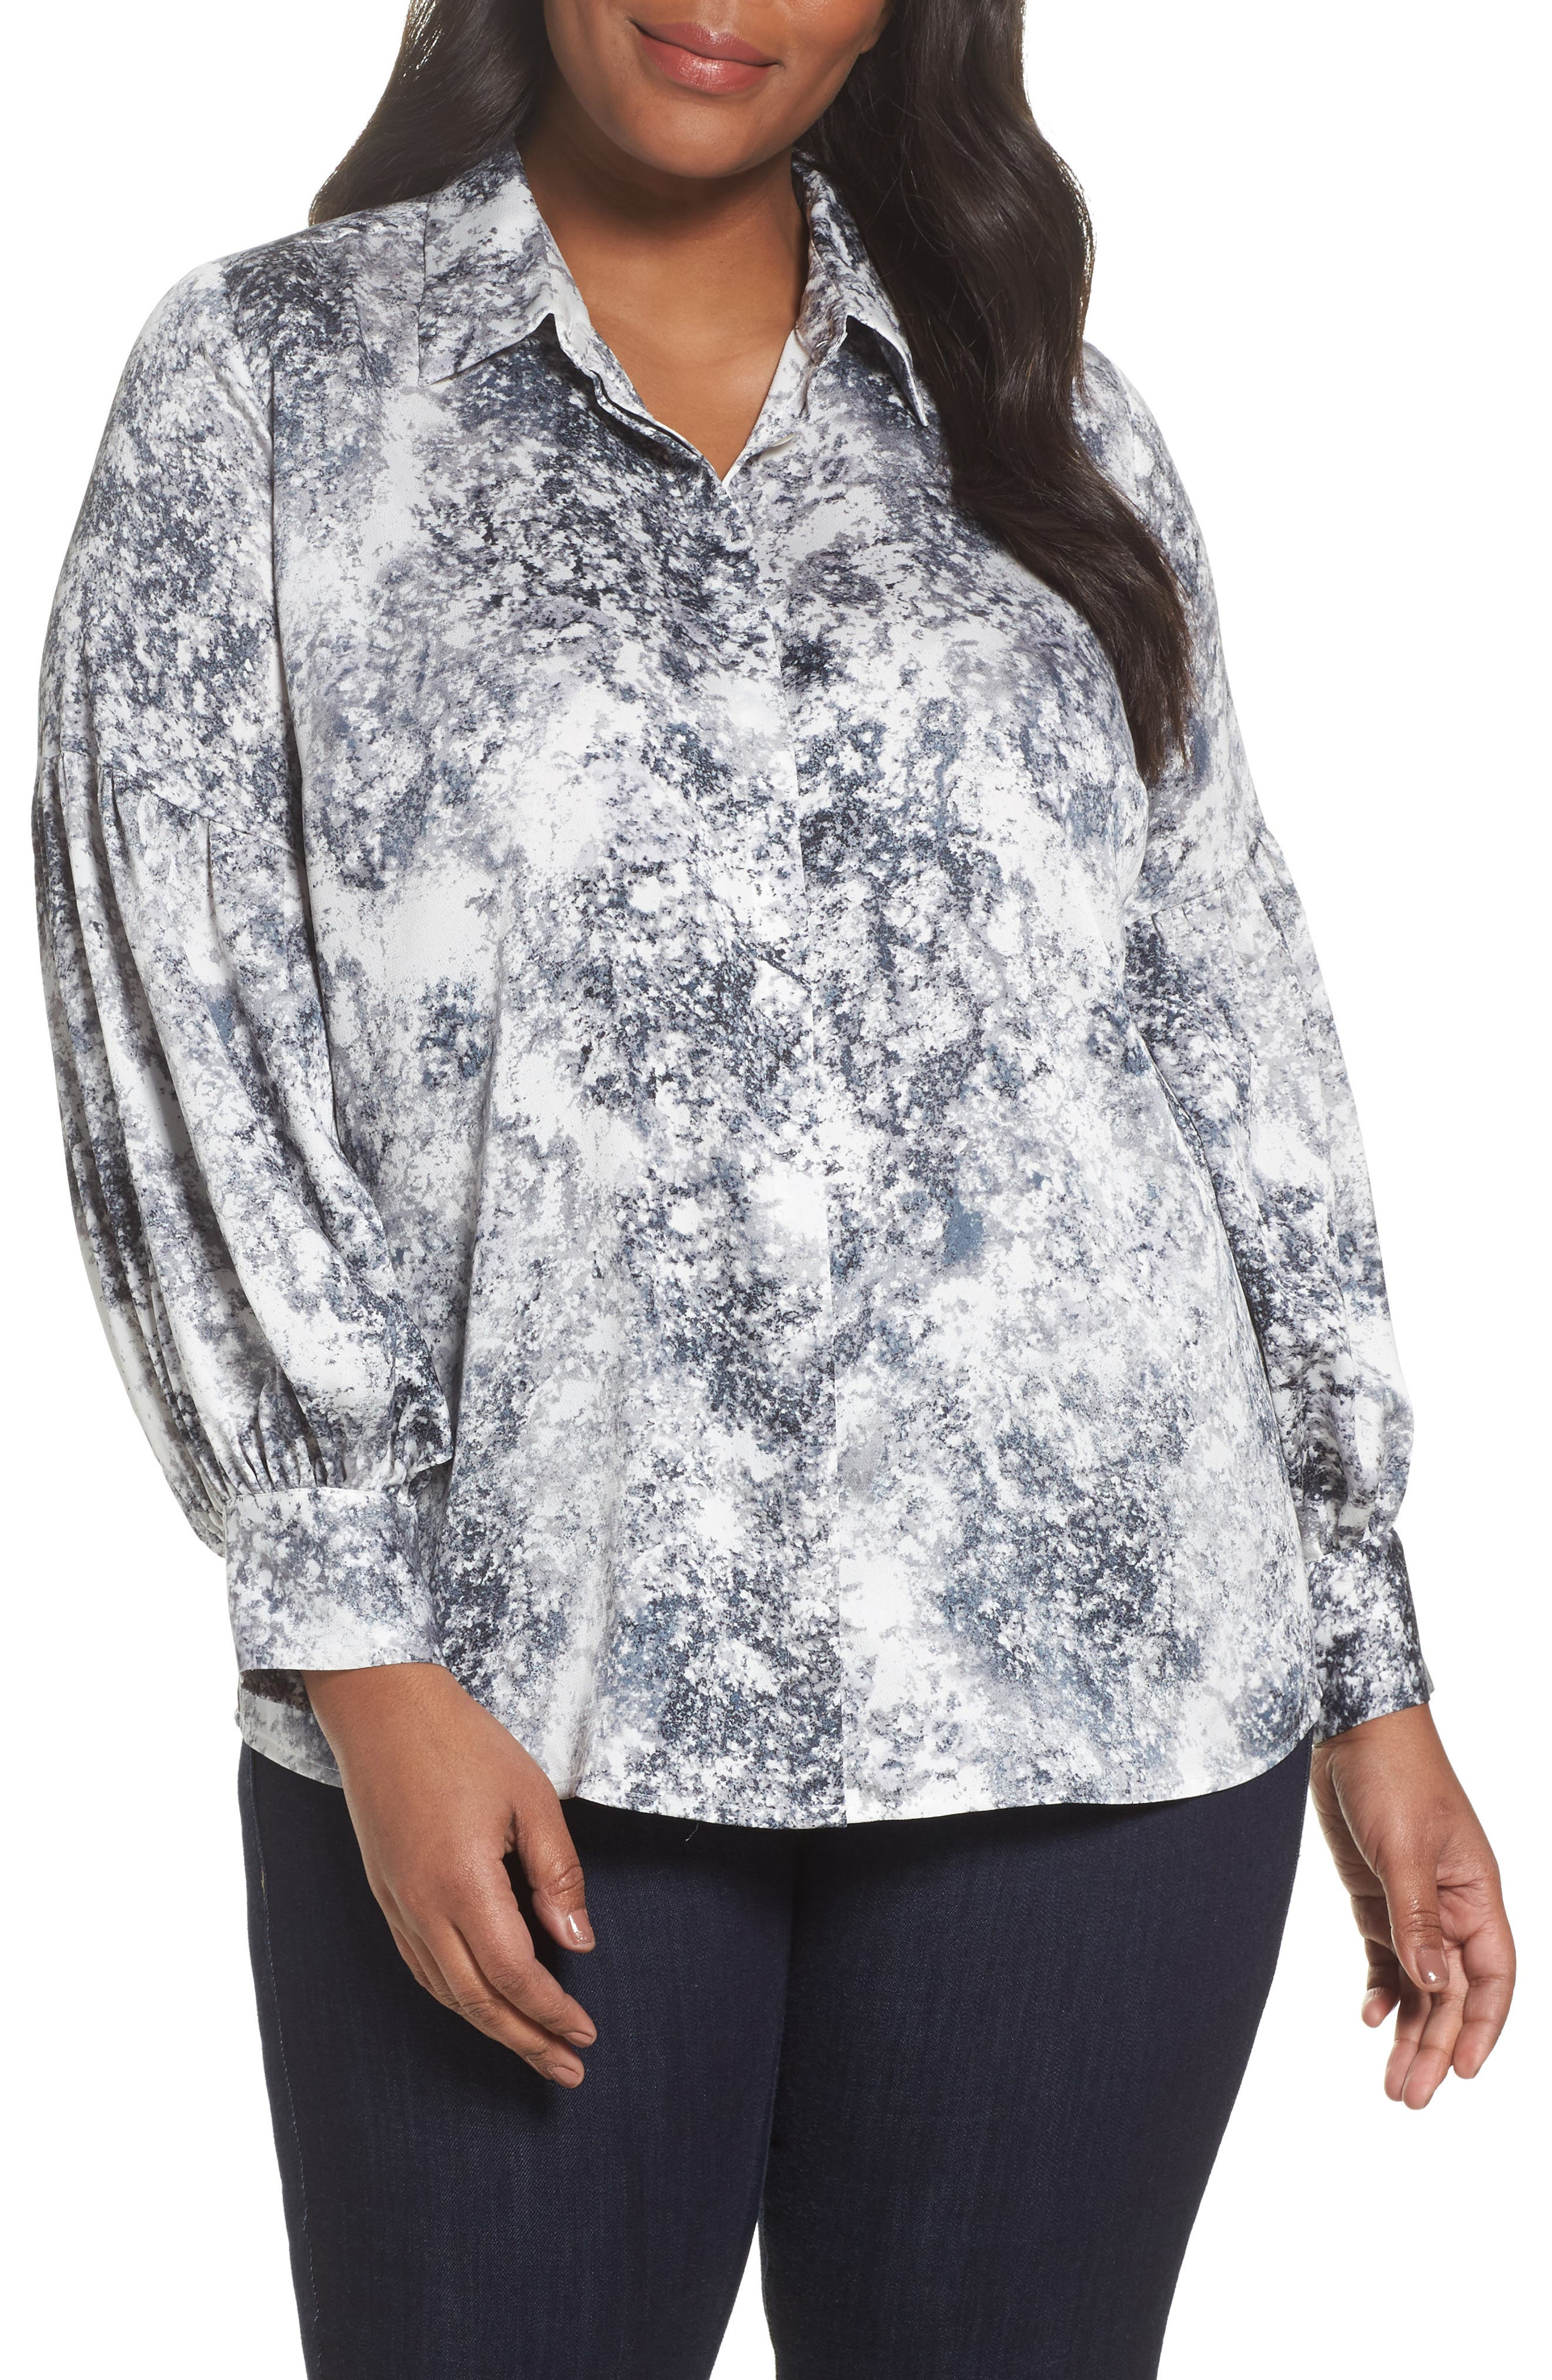 Speckled Print Blouse,                         Main,                         color, 108